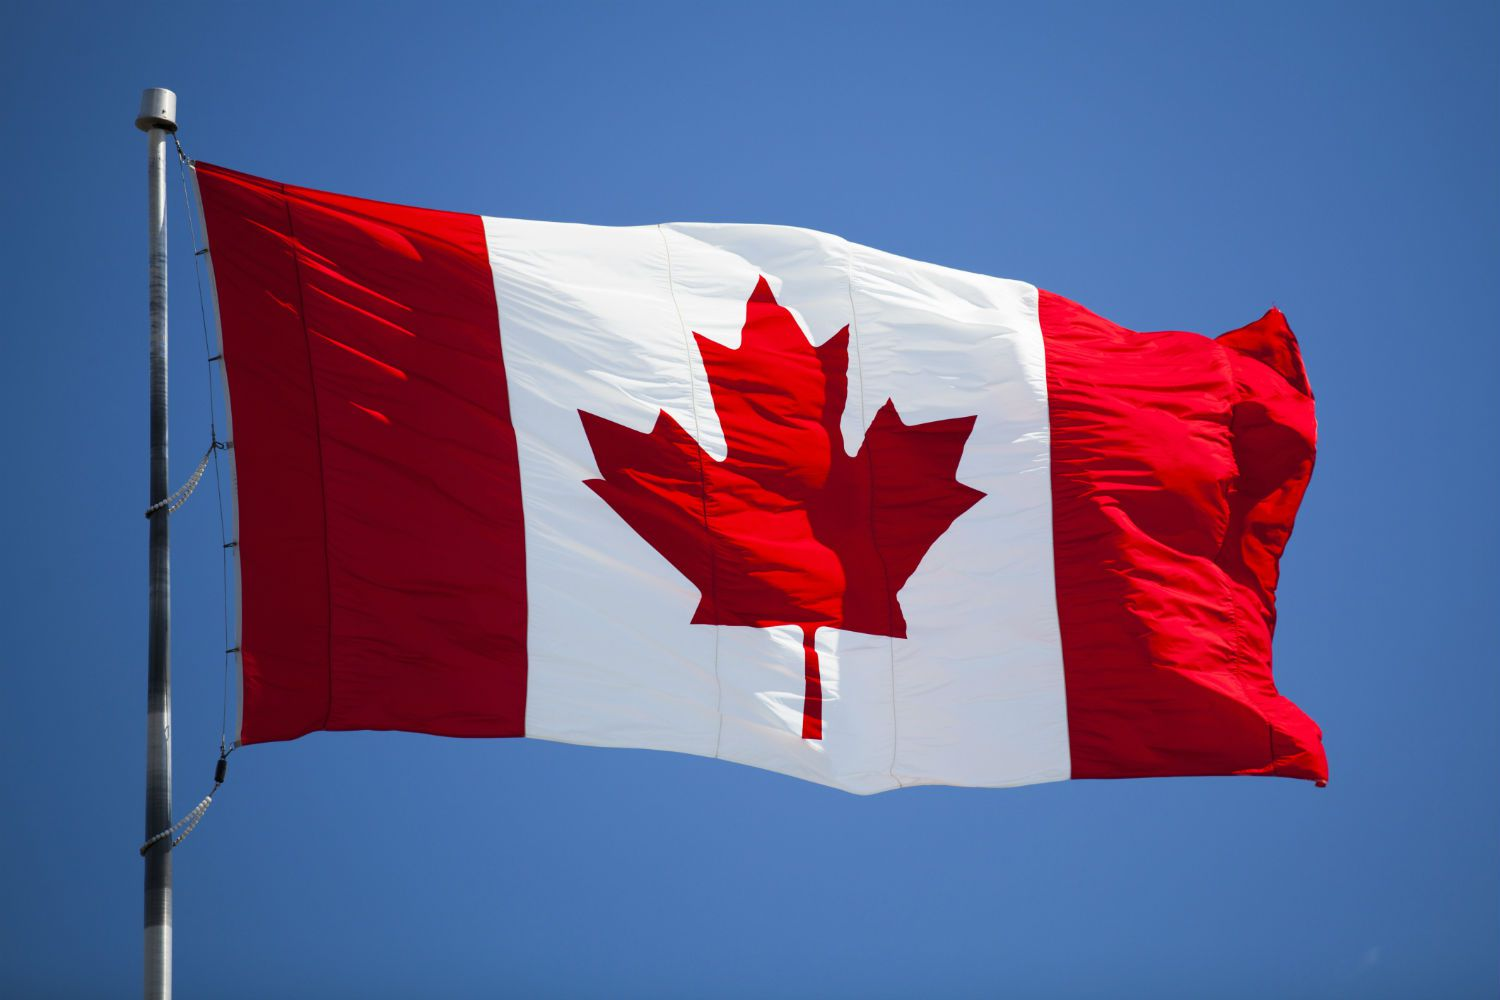 The national flag of canada - Canada flag image ...